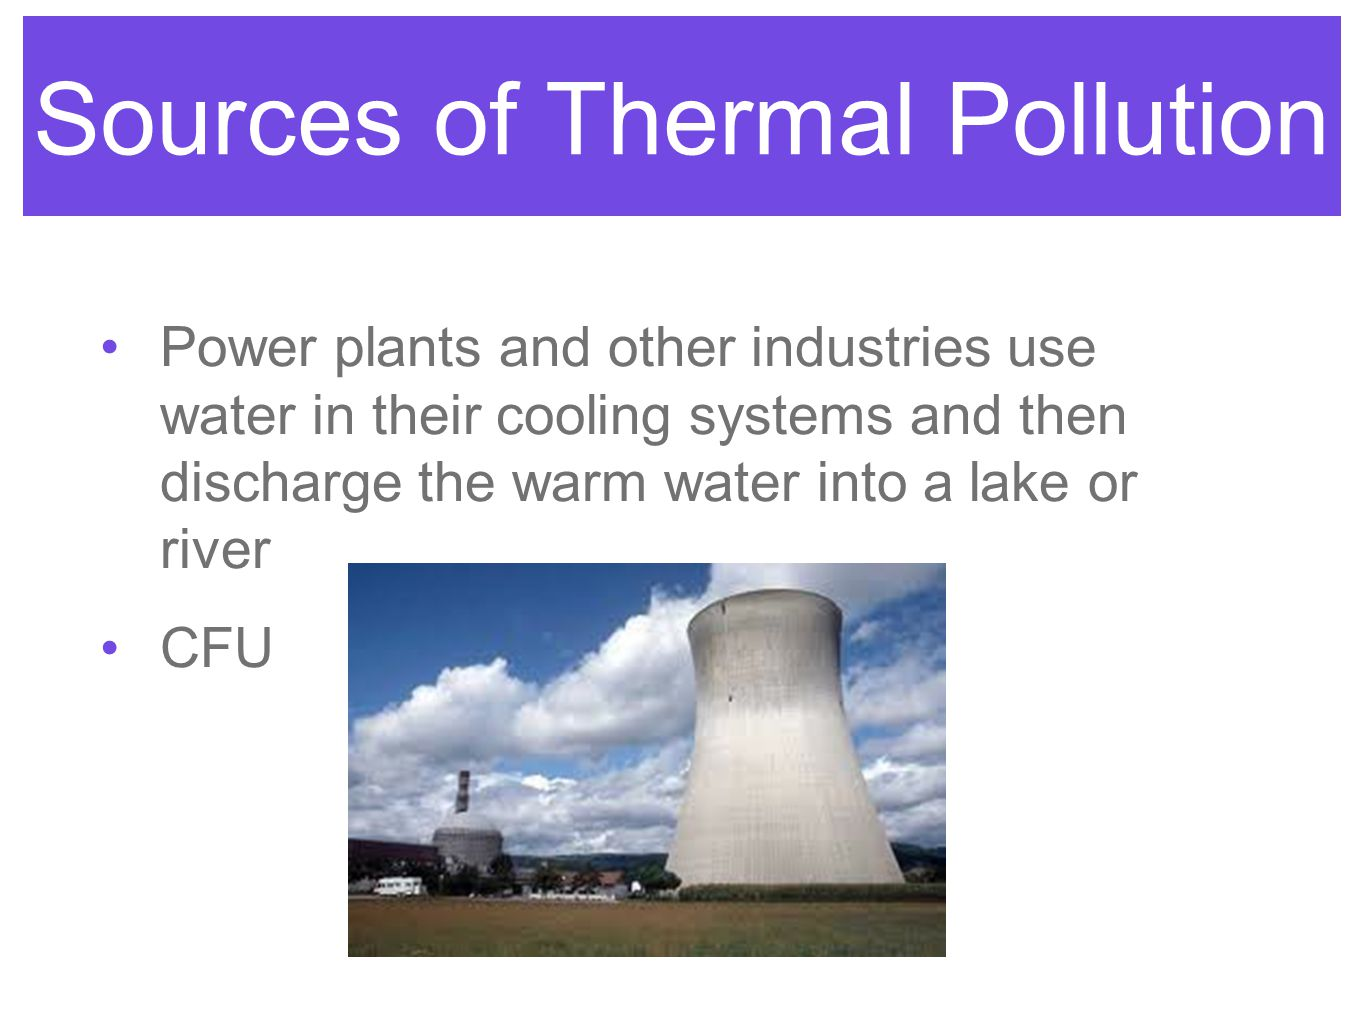 Sources of Thermal Pollution